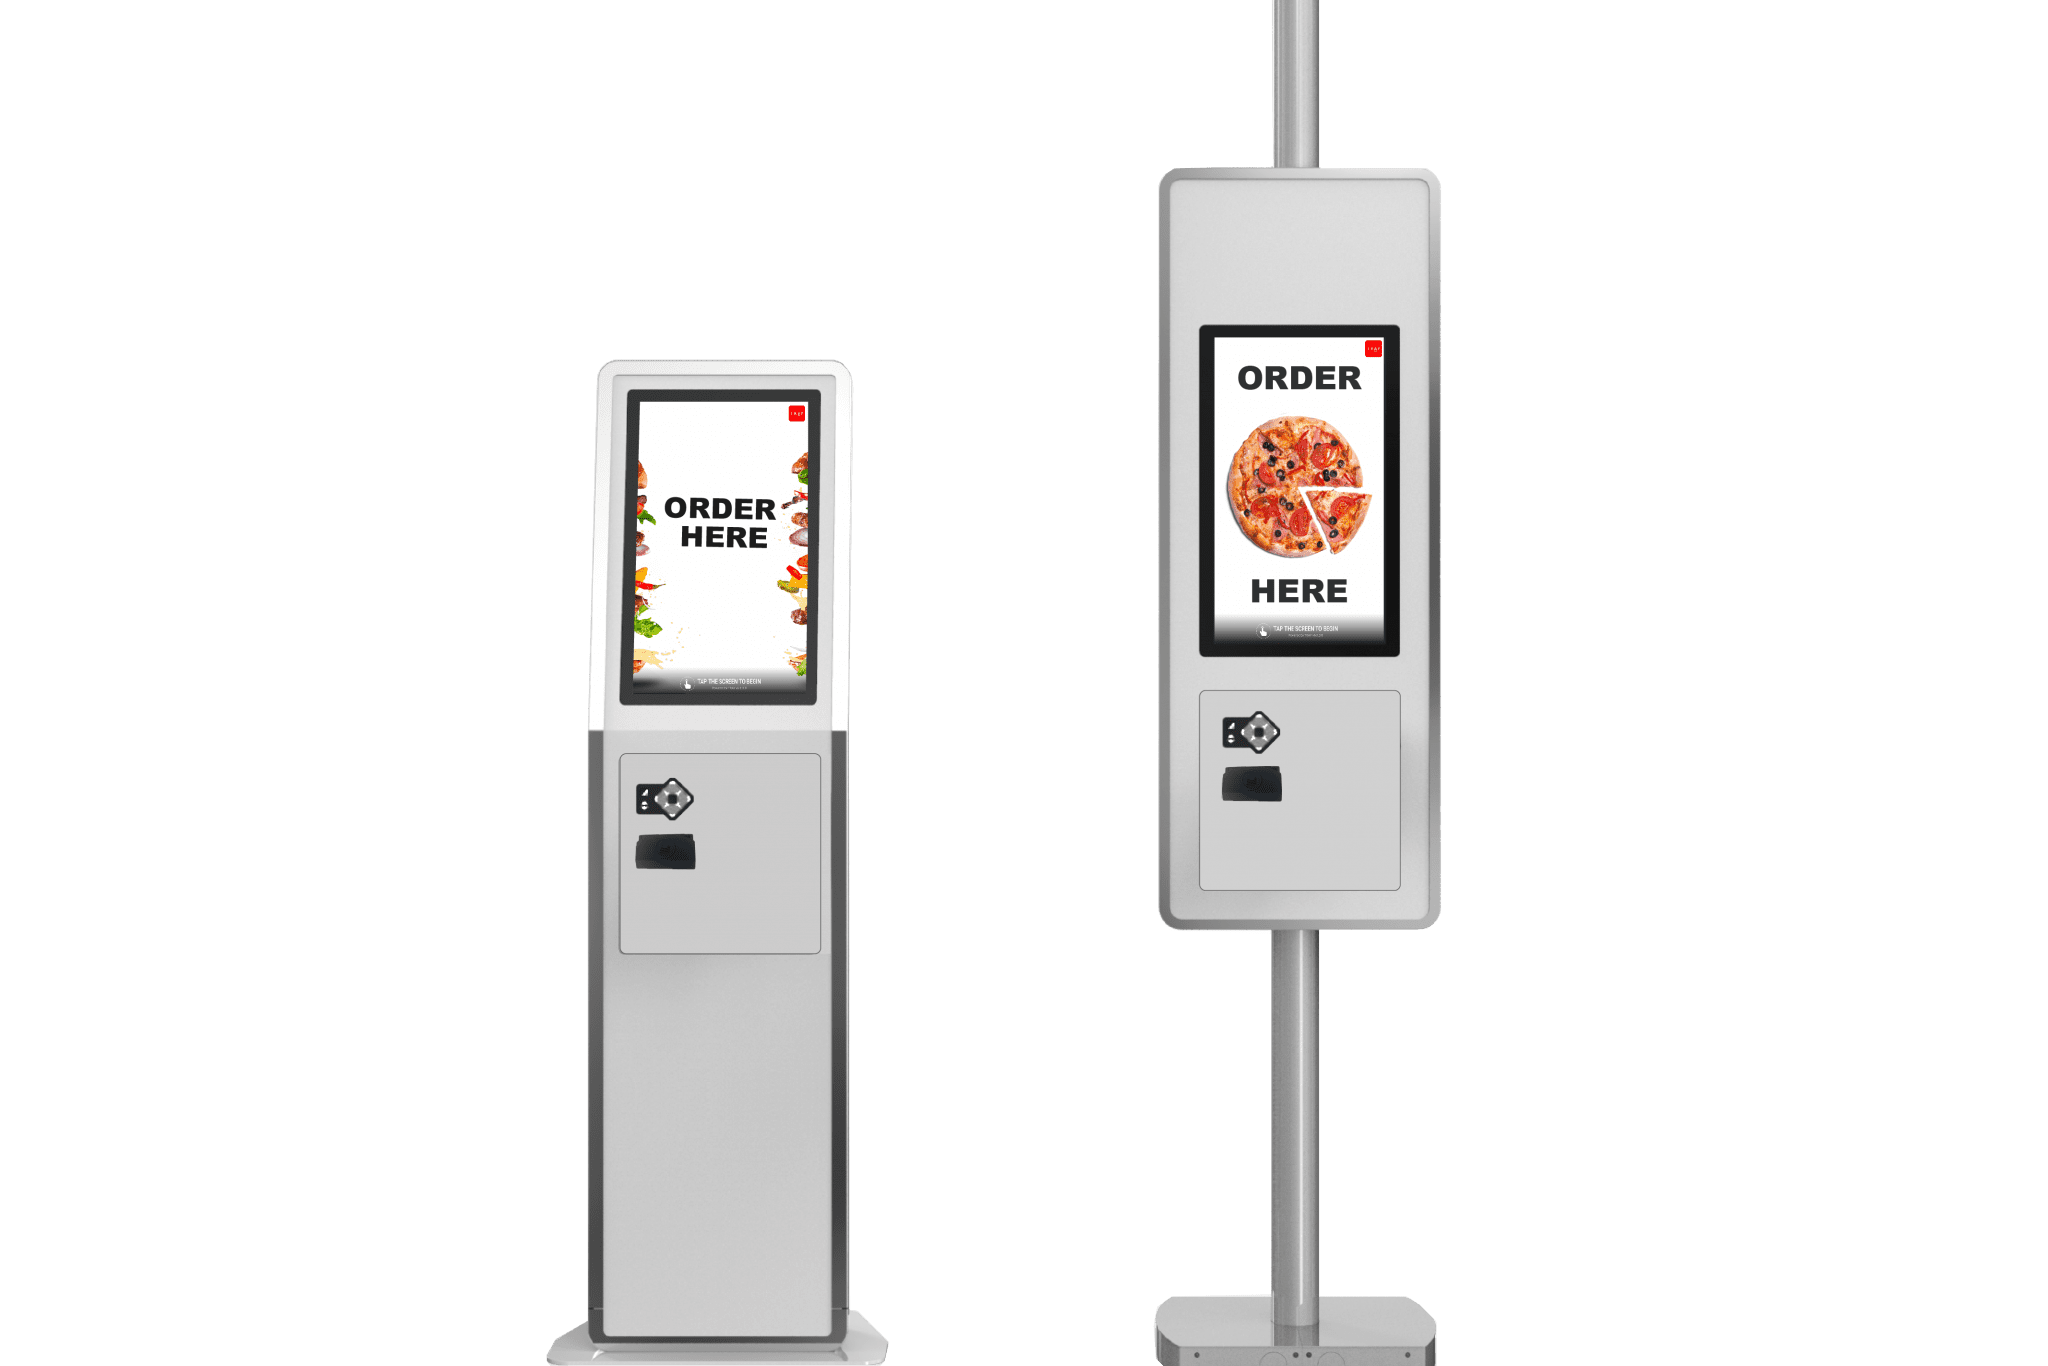 https://tray.com/wp-content/uploads/2019/01/Website-Self-Service-Kiosk-01-e1547825862877.png